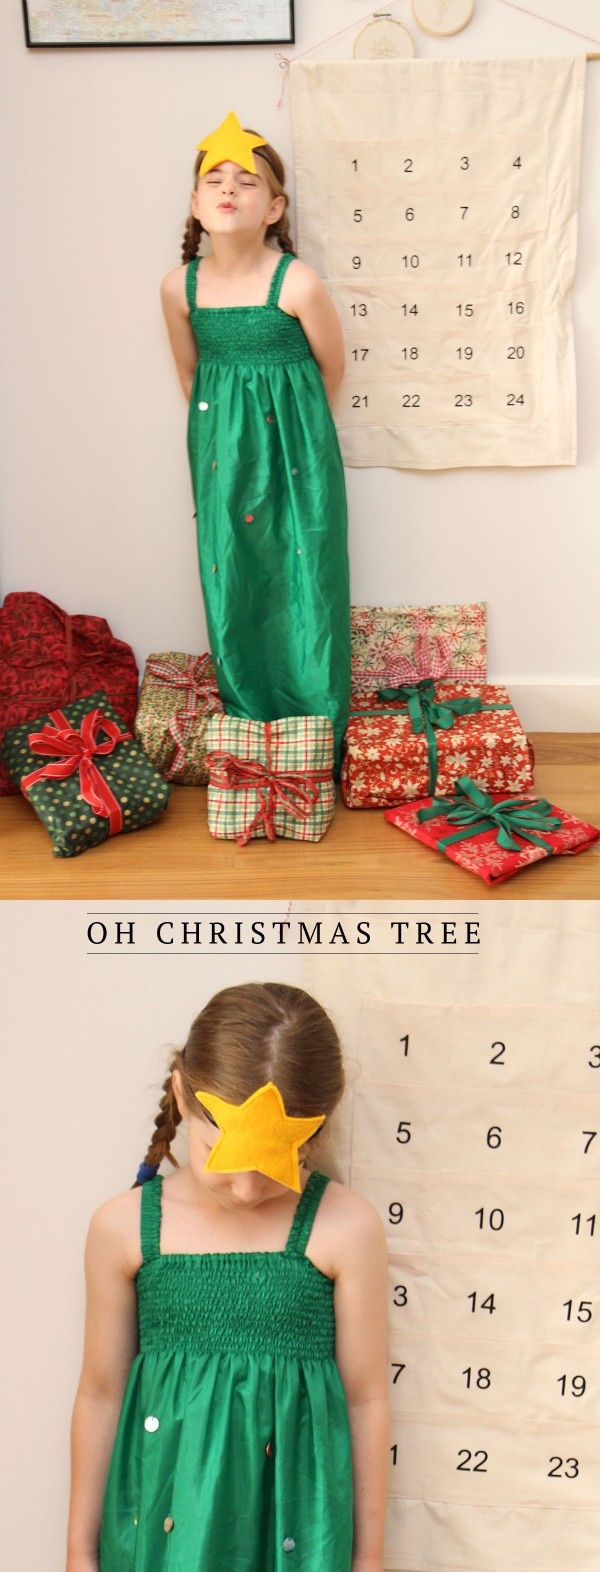 Oh Christmas tree // A costume by Megan Nielsen